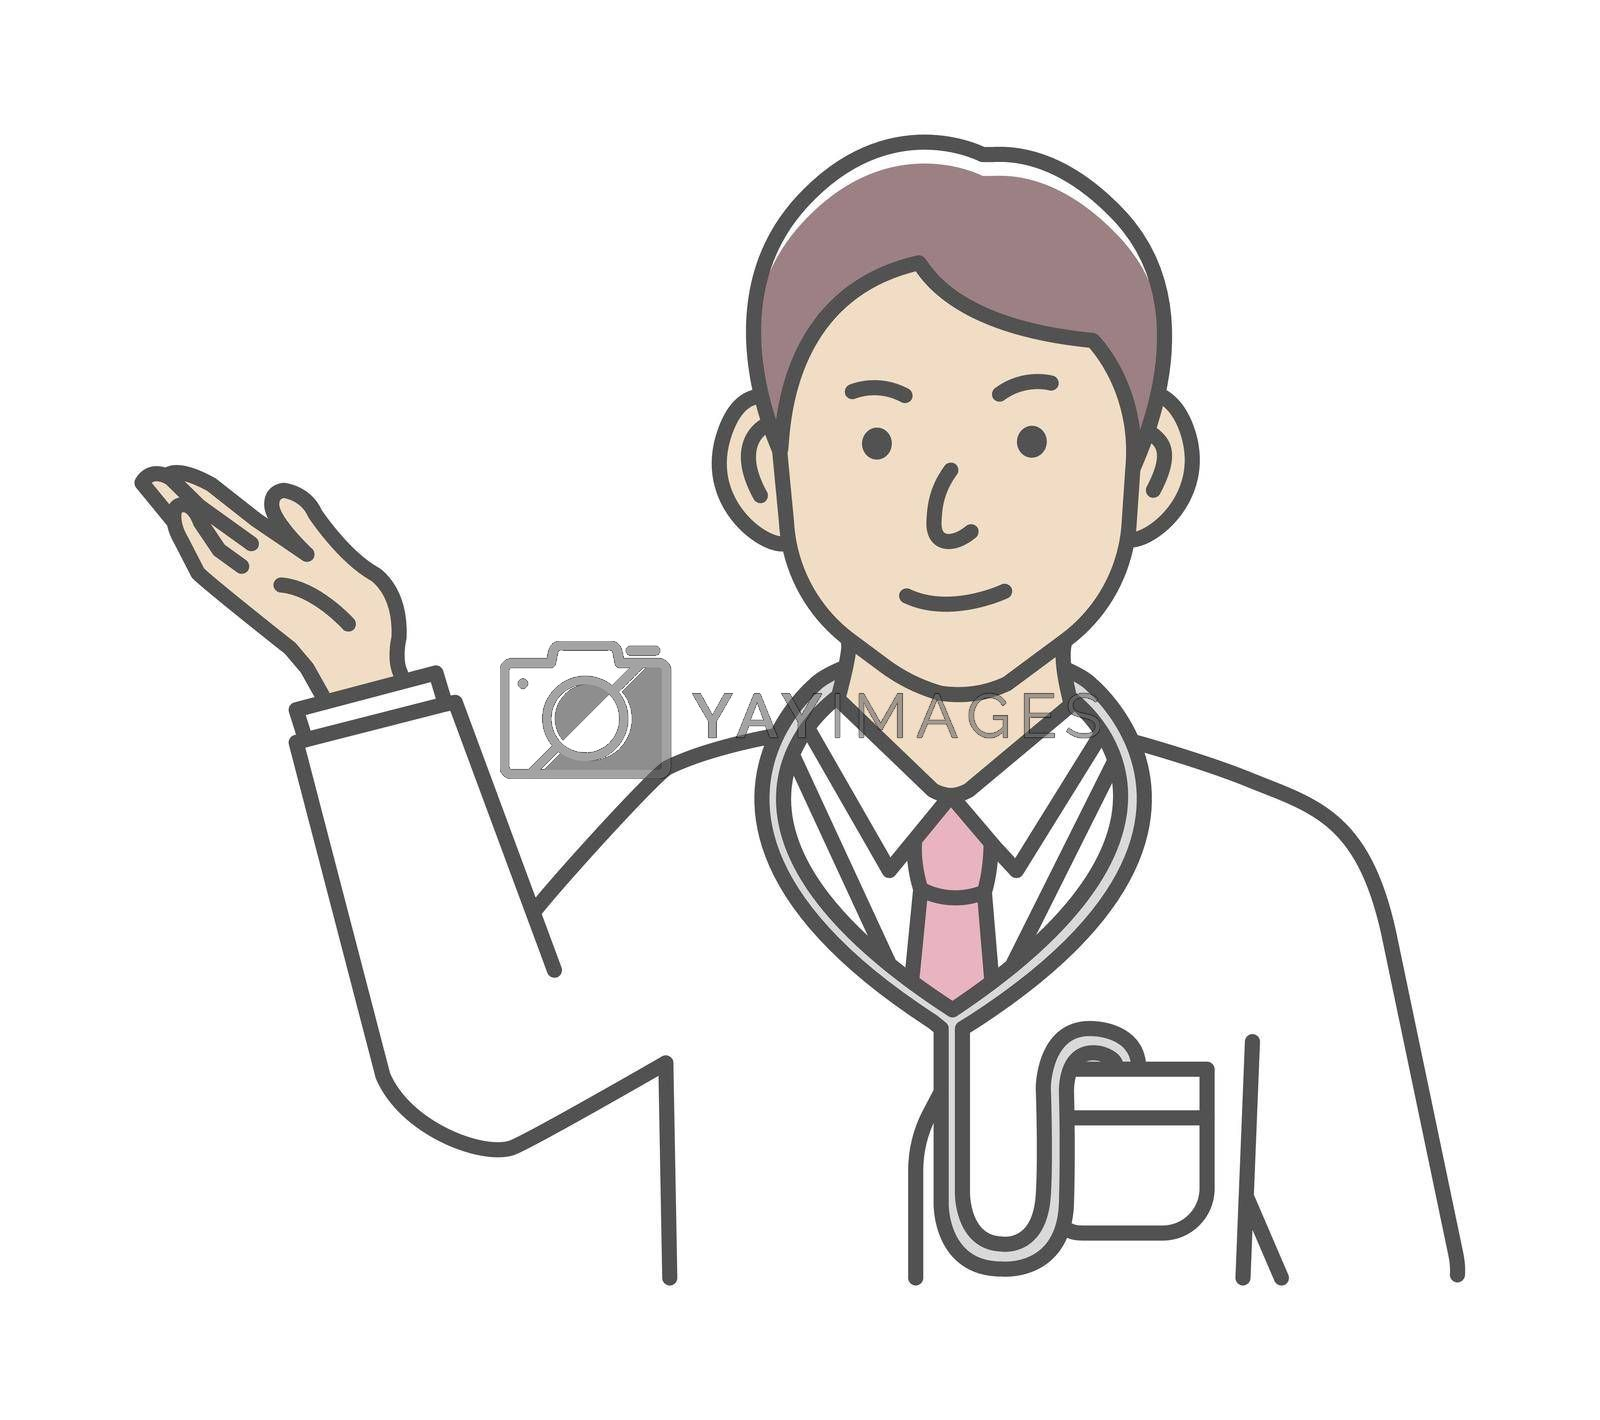 Royalty free image of Young male doctor gesture variation illustration   navigate, recommend by barks